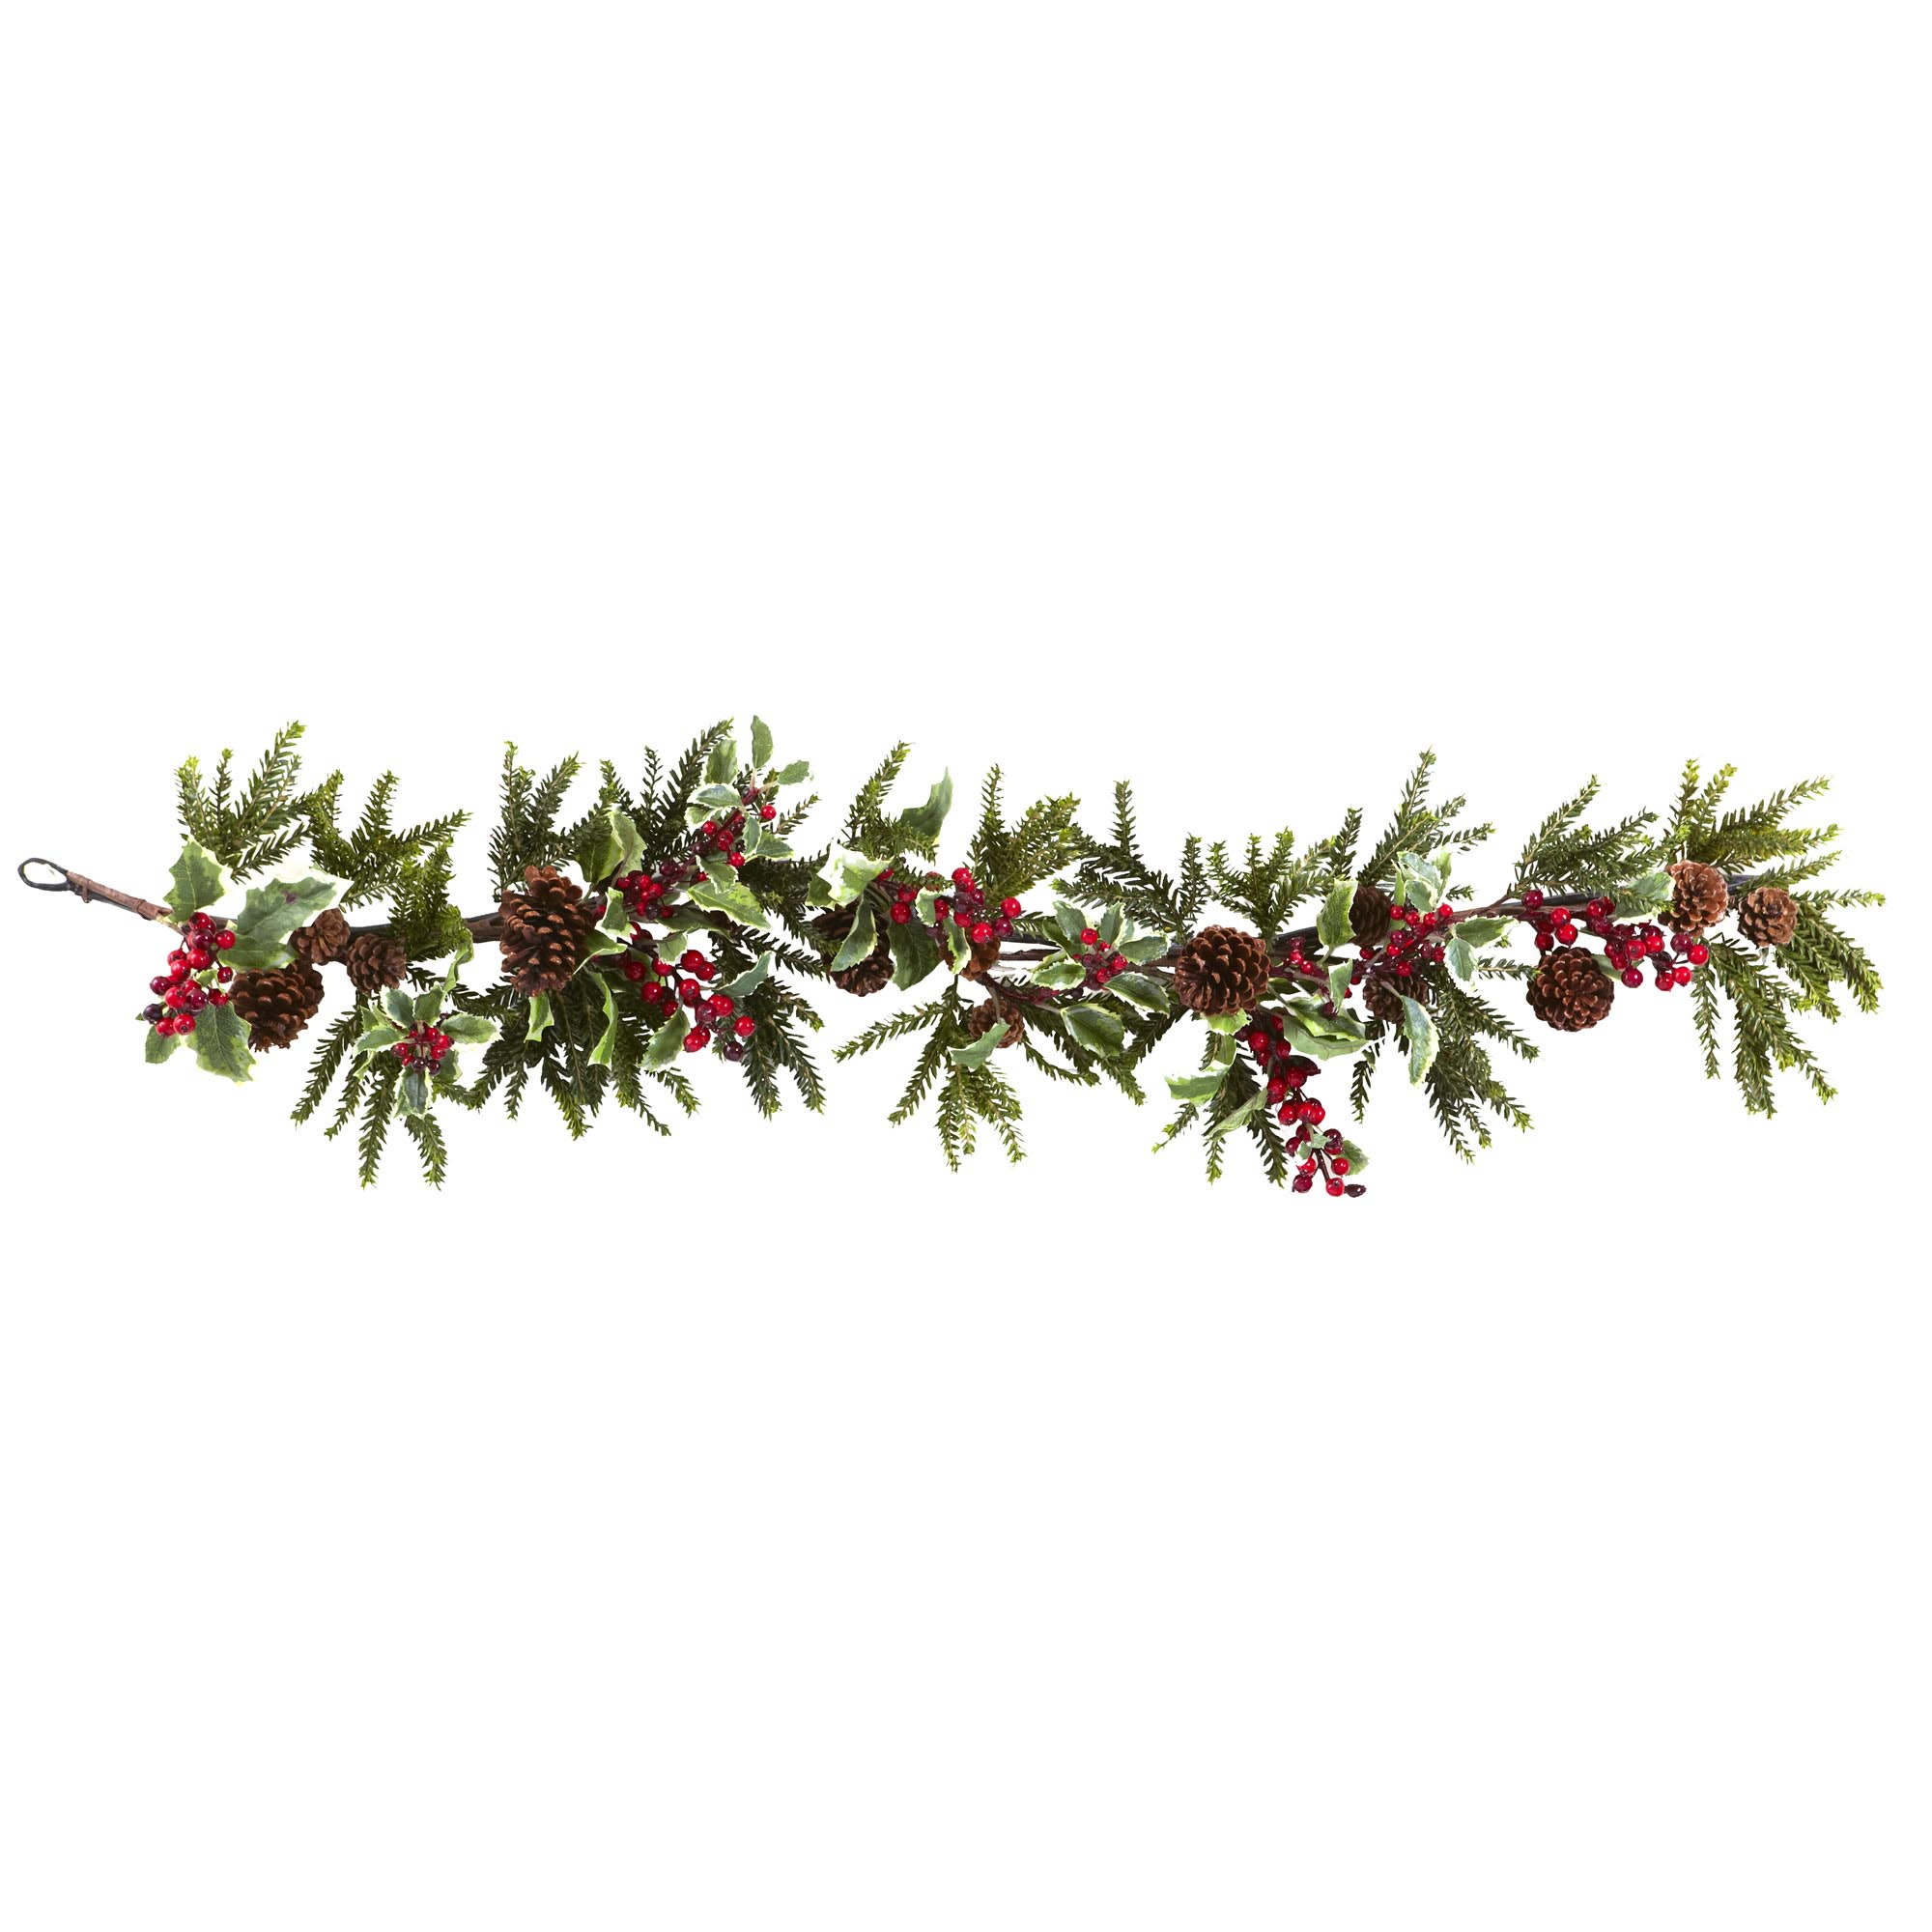 Clipart evergreenwreath banner free library Free Evergreen Garland Cliparts, Download Free Clip Art, Free Clip ... banner free library